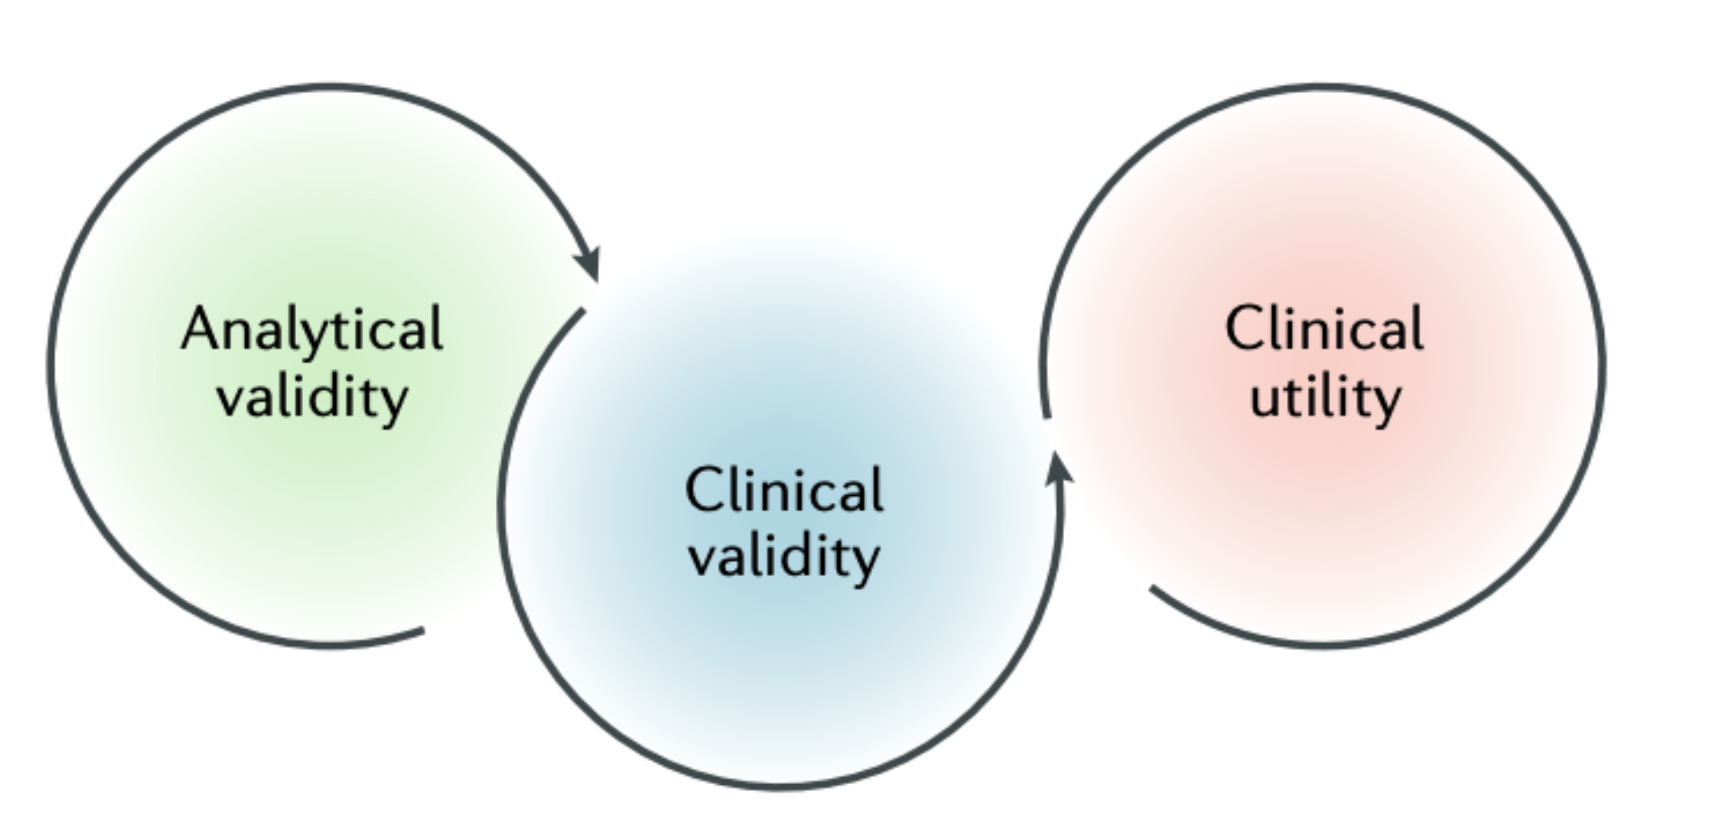 FIGURE 2: Kraus VB. Biomarkers as drug development tools: Discovery, validation, qualification and use. Nature Reviews Rheumatology.